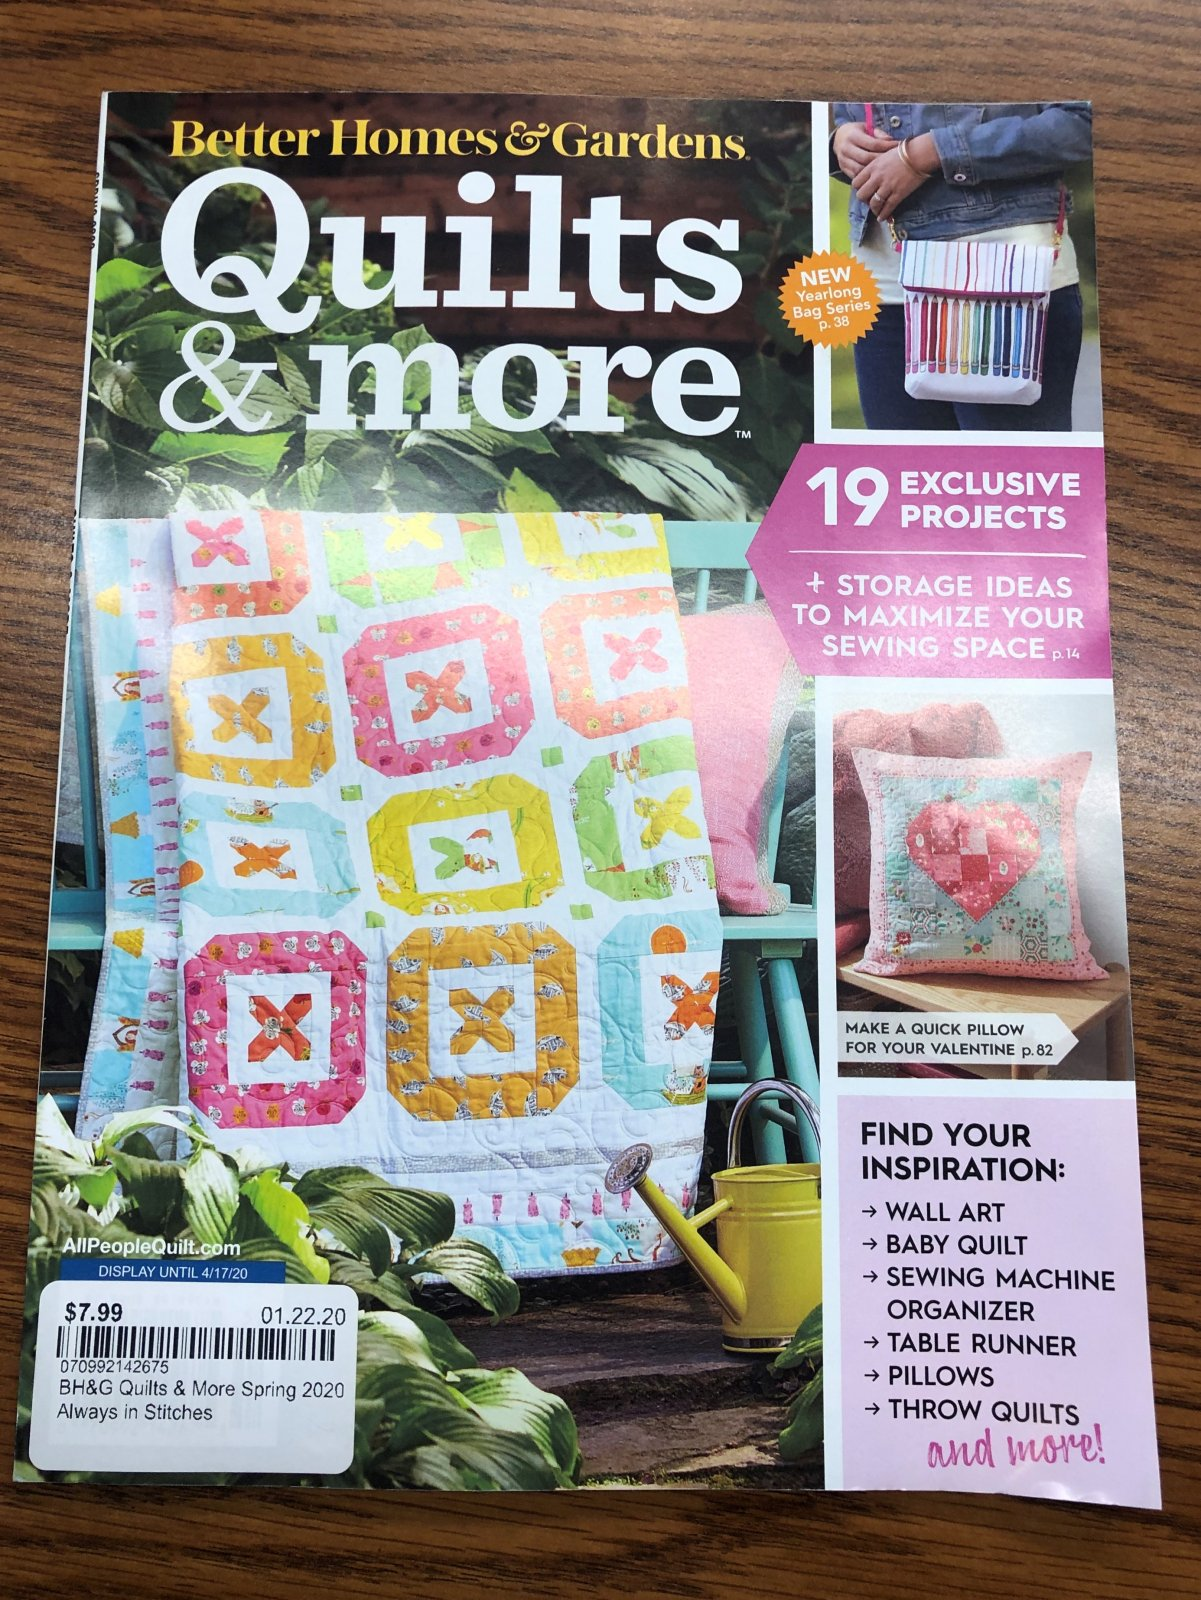 BH&G Quilts & More Spring 2020